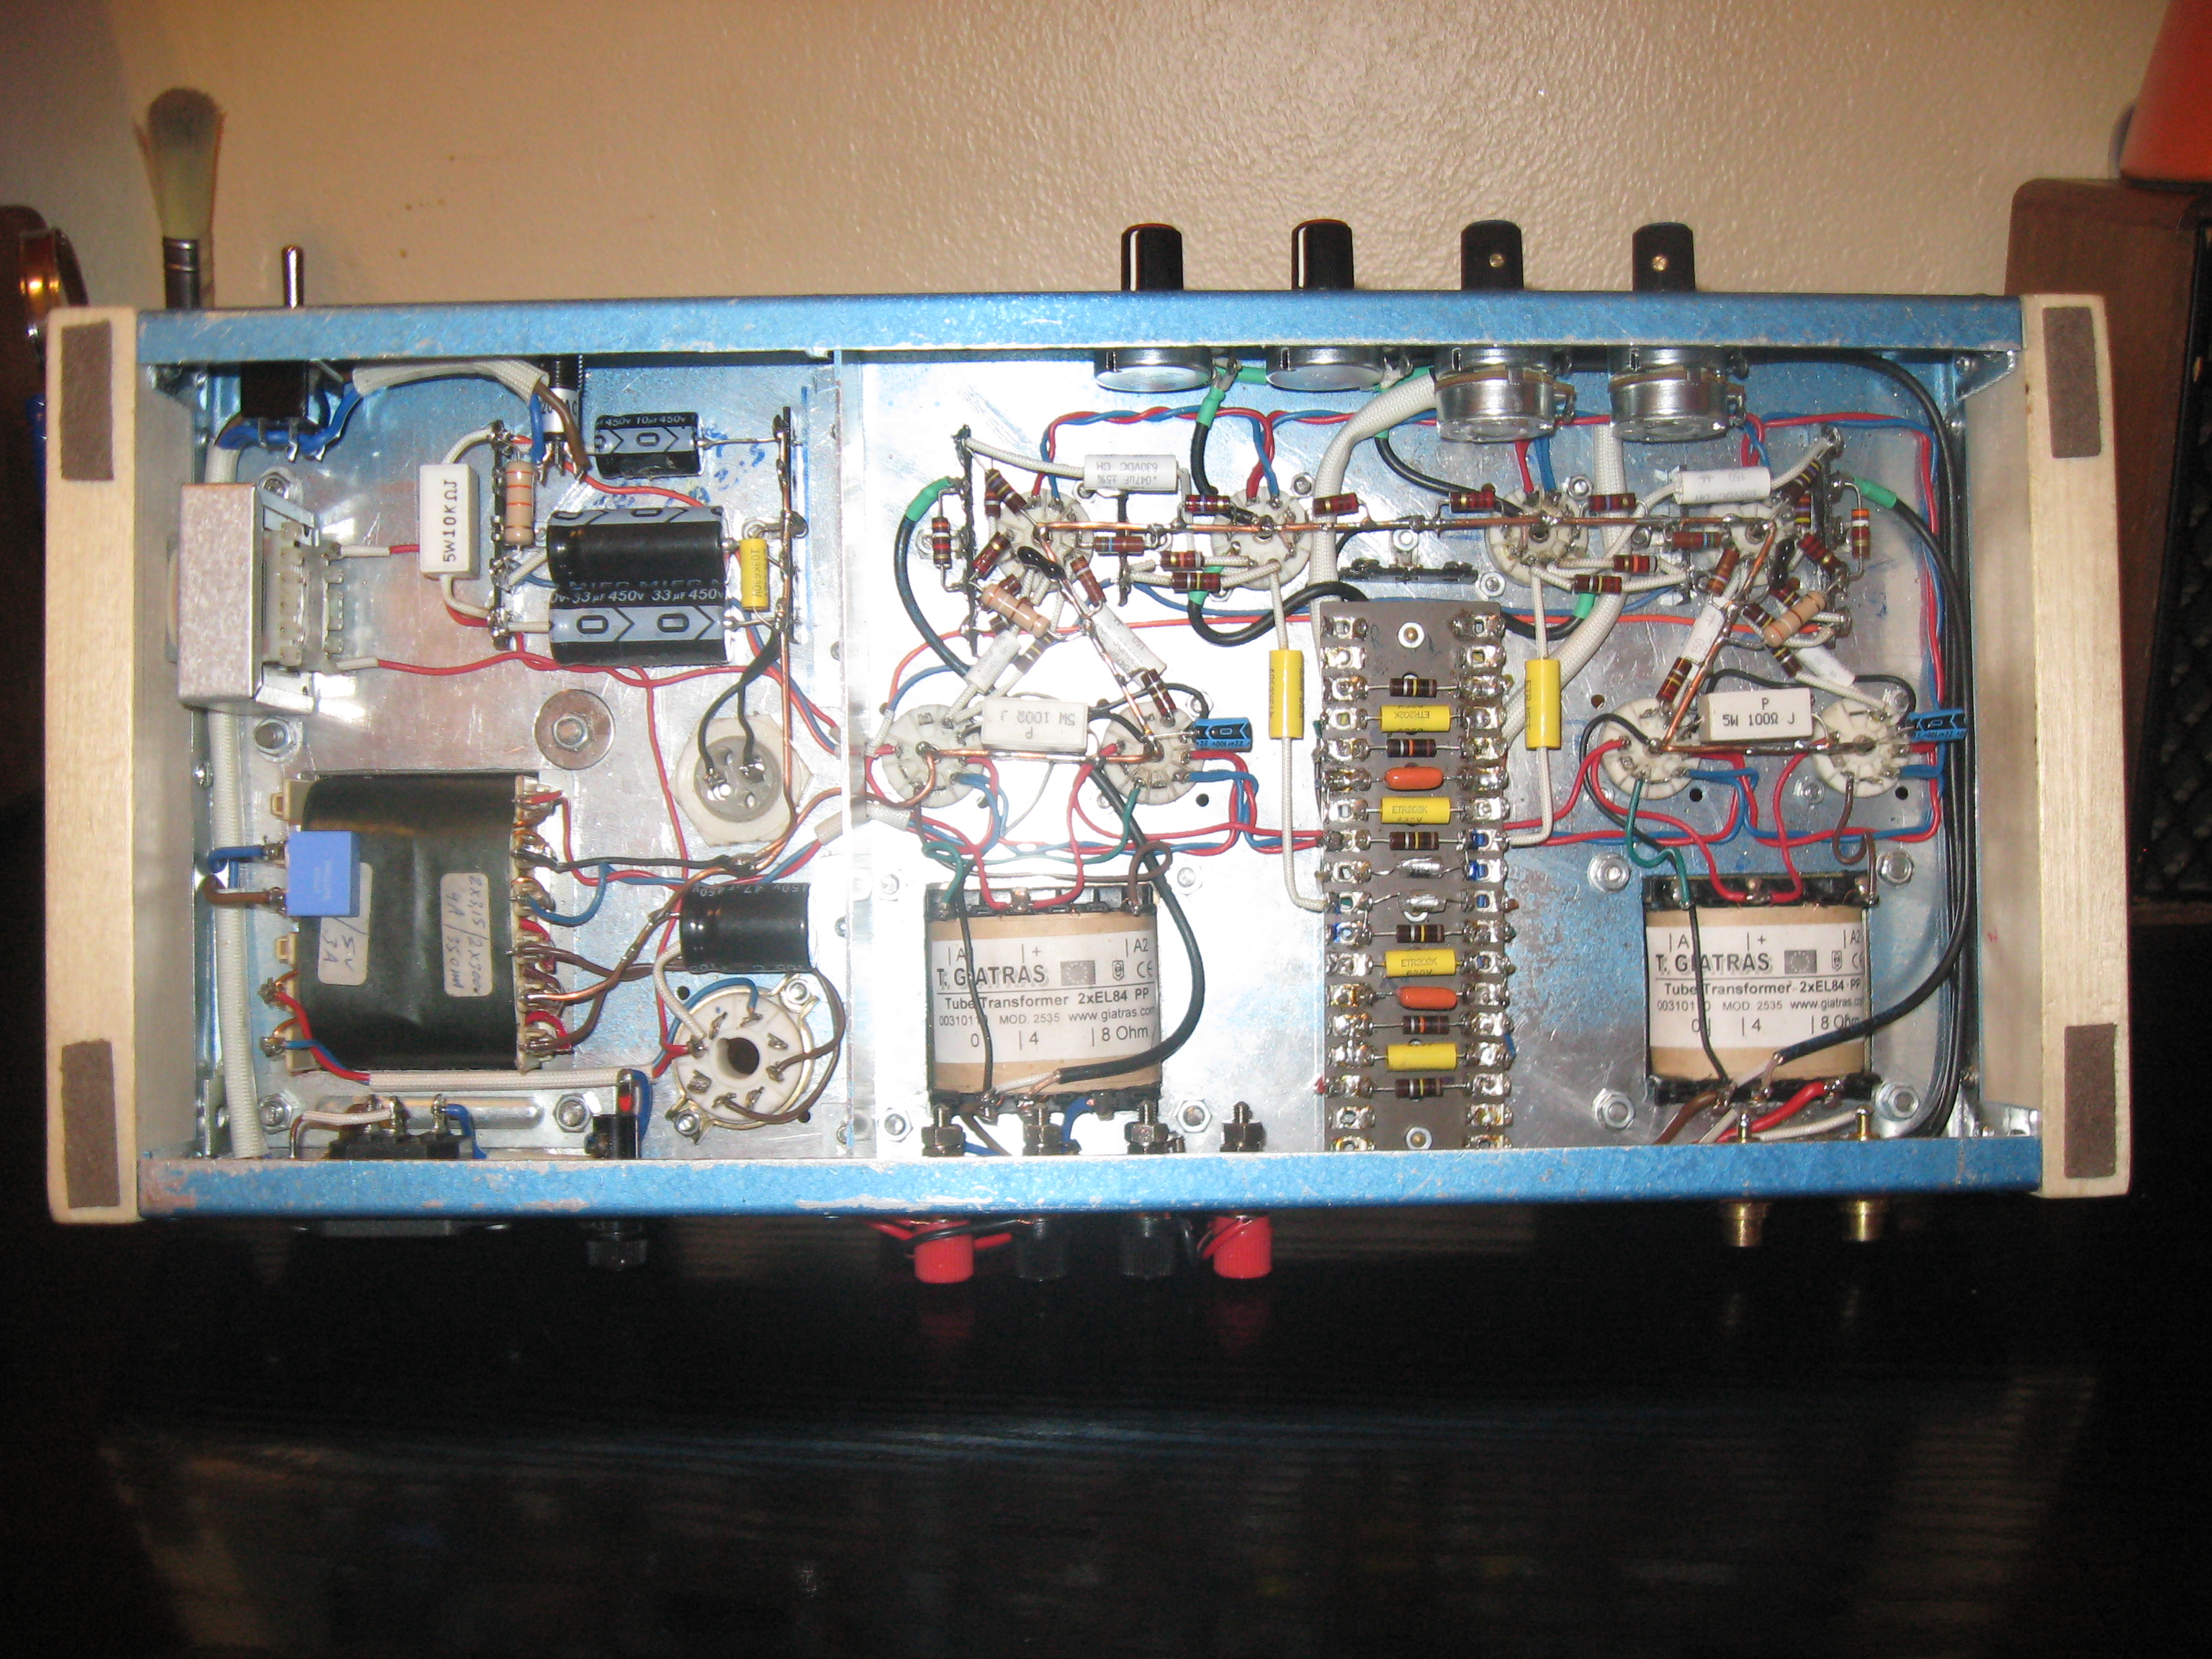 Magnavox Schematic Diagrams likewise 9 tube furthermore  on wkinsler radios 9 tube stereo